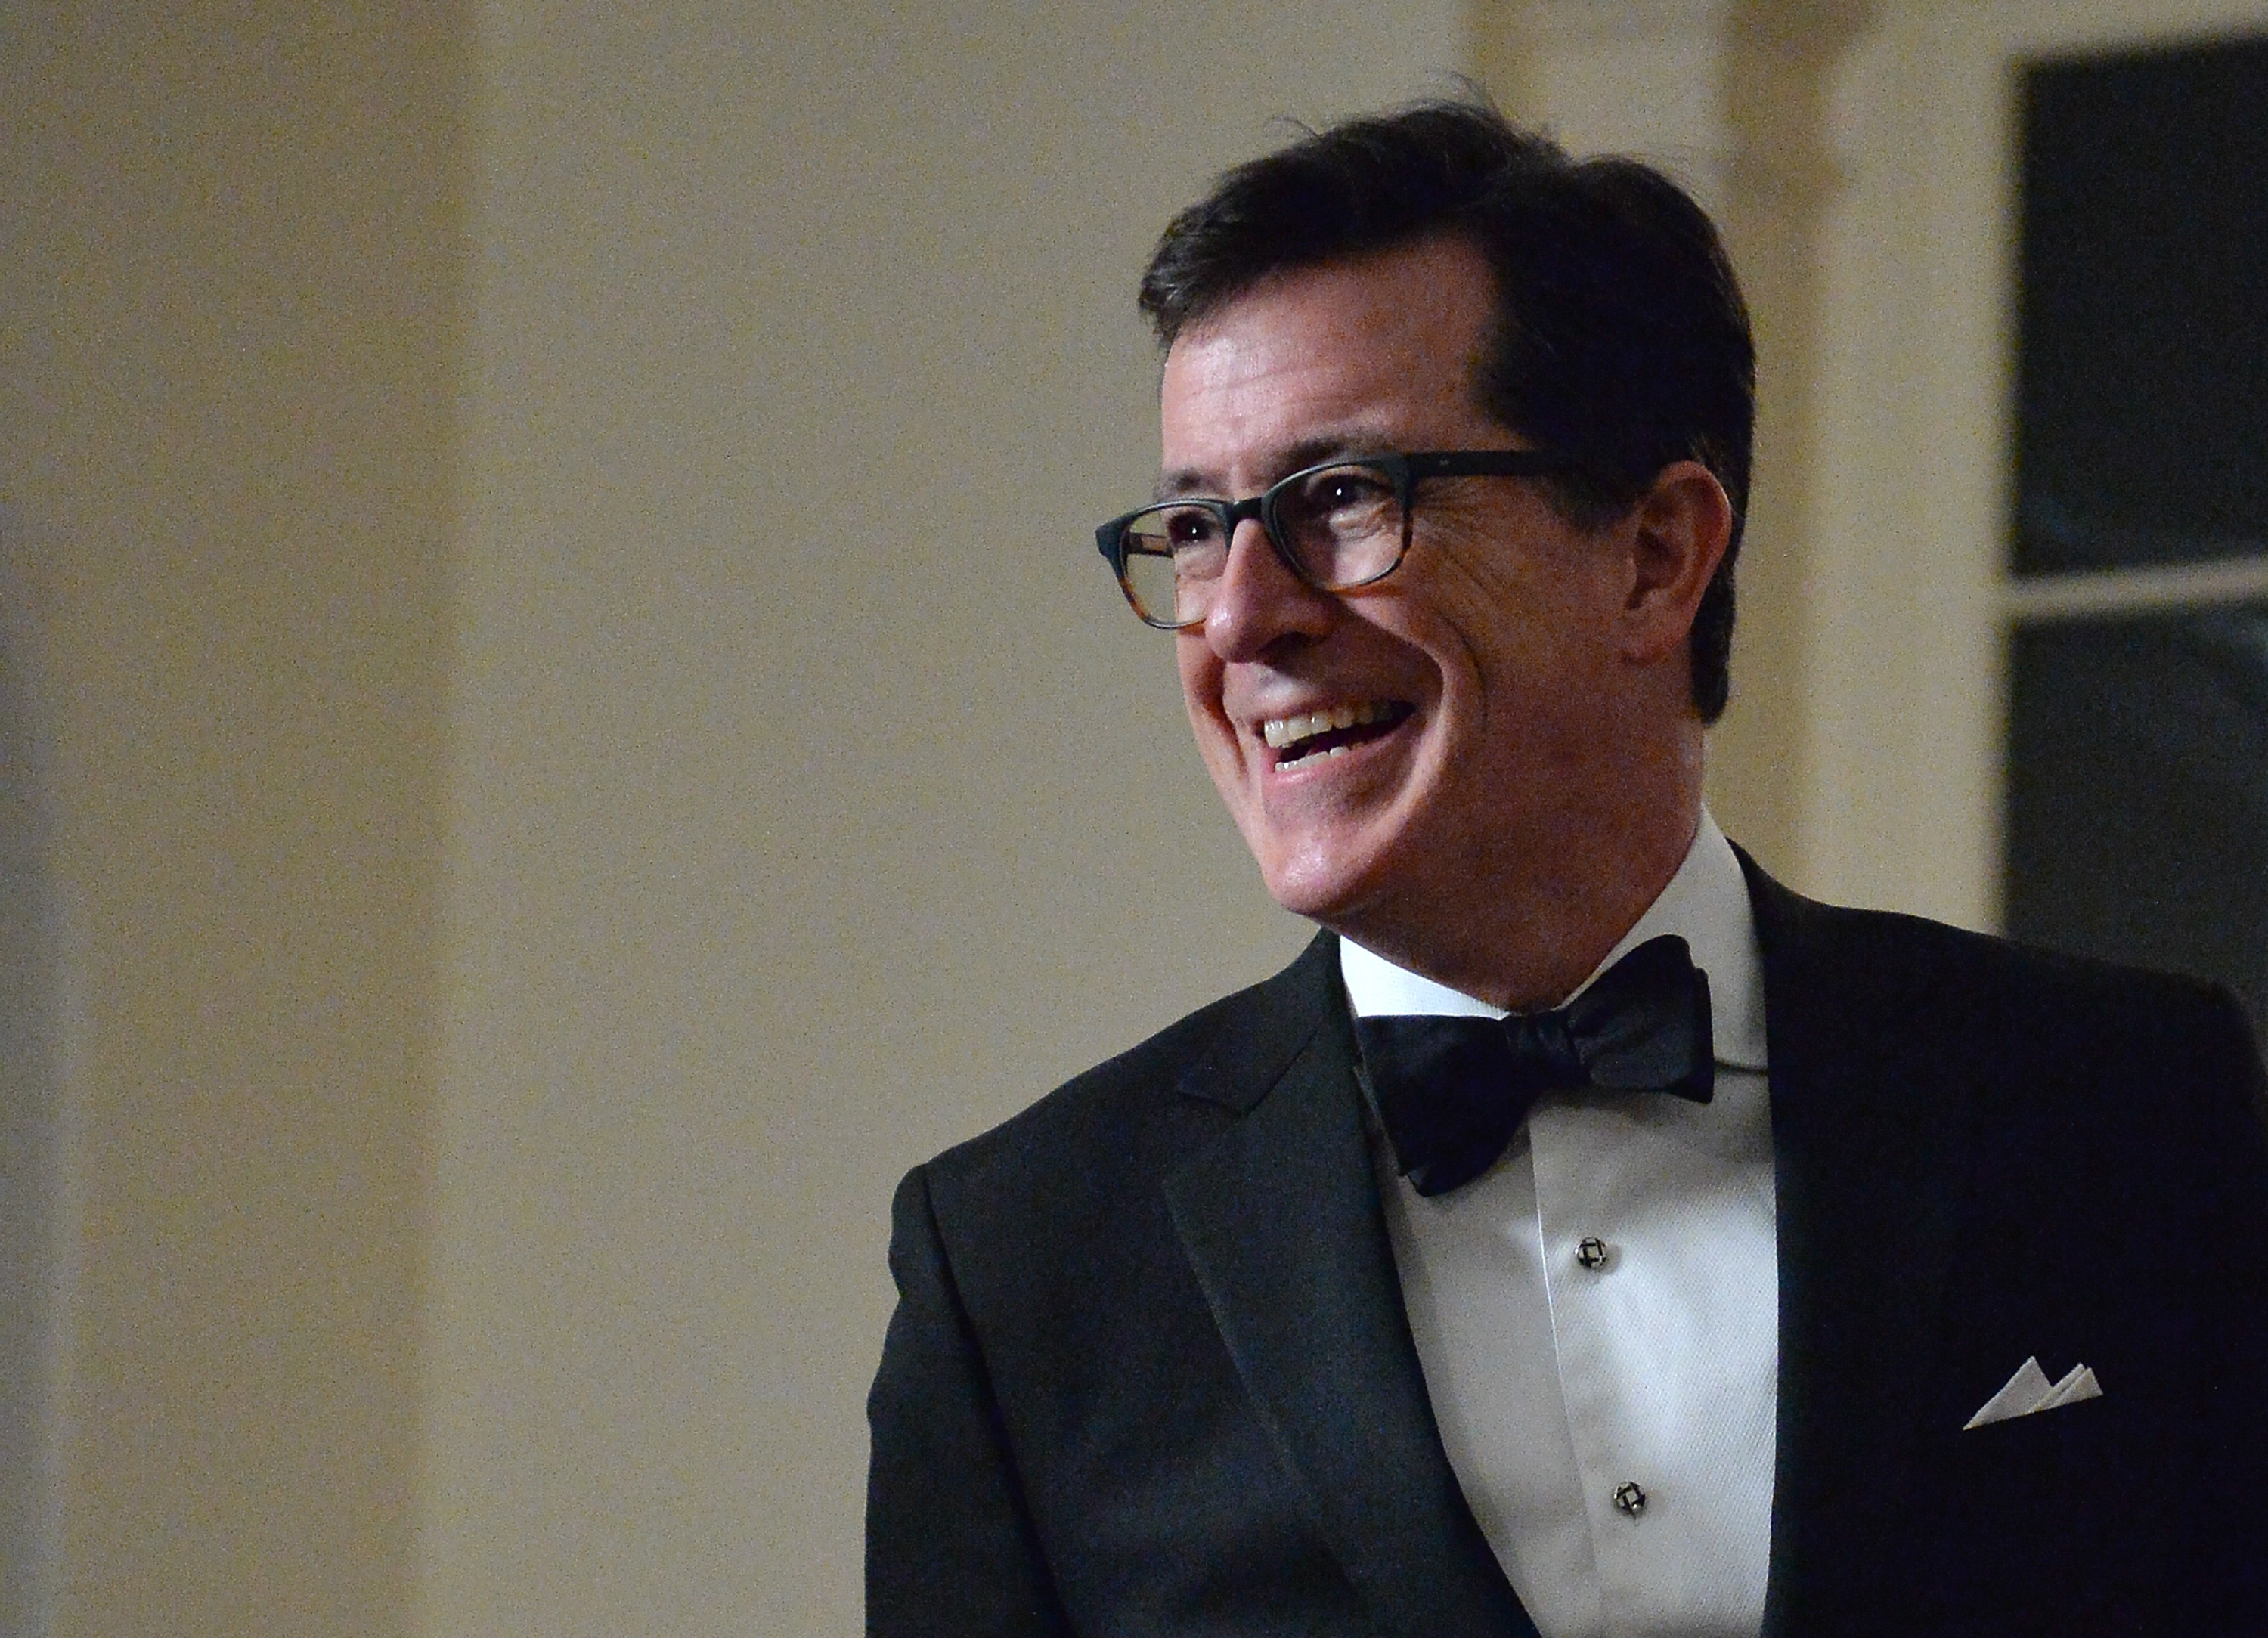 Stephen Colbert arrives at the White House in Washington on Feb. 11, 2014 for the state dinner in honor of French President Francois Hollande.